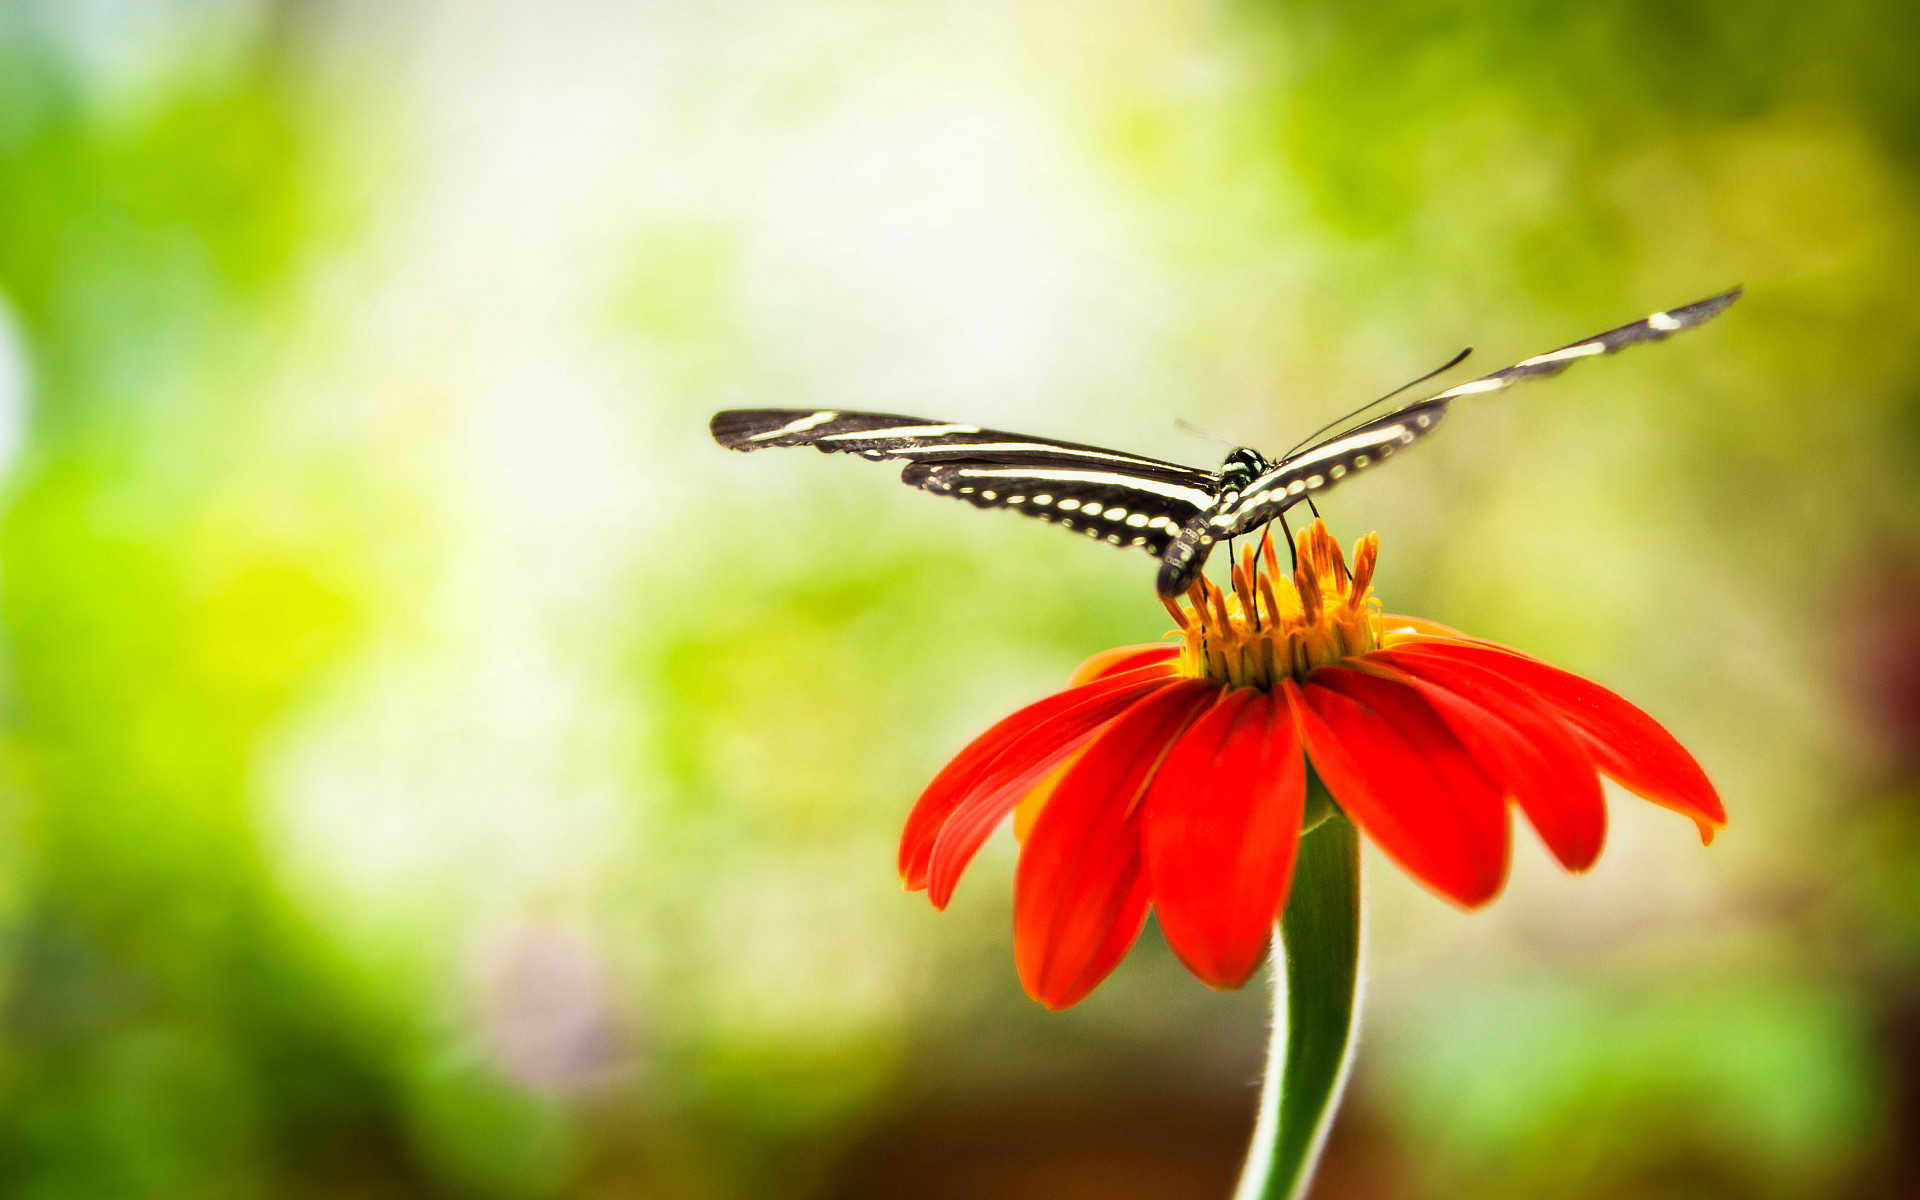 Res: 1920x1200, Flowers With Butterfly Wallpapers Hd.